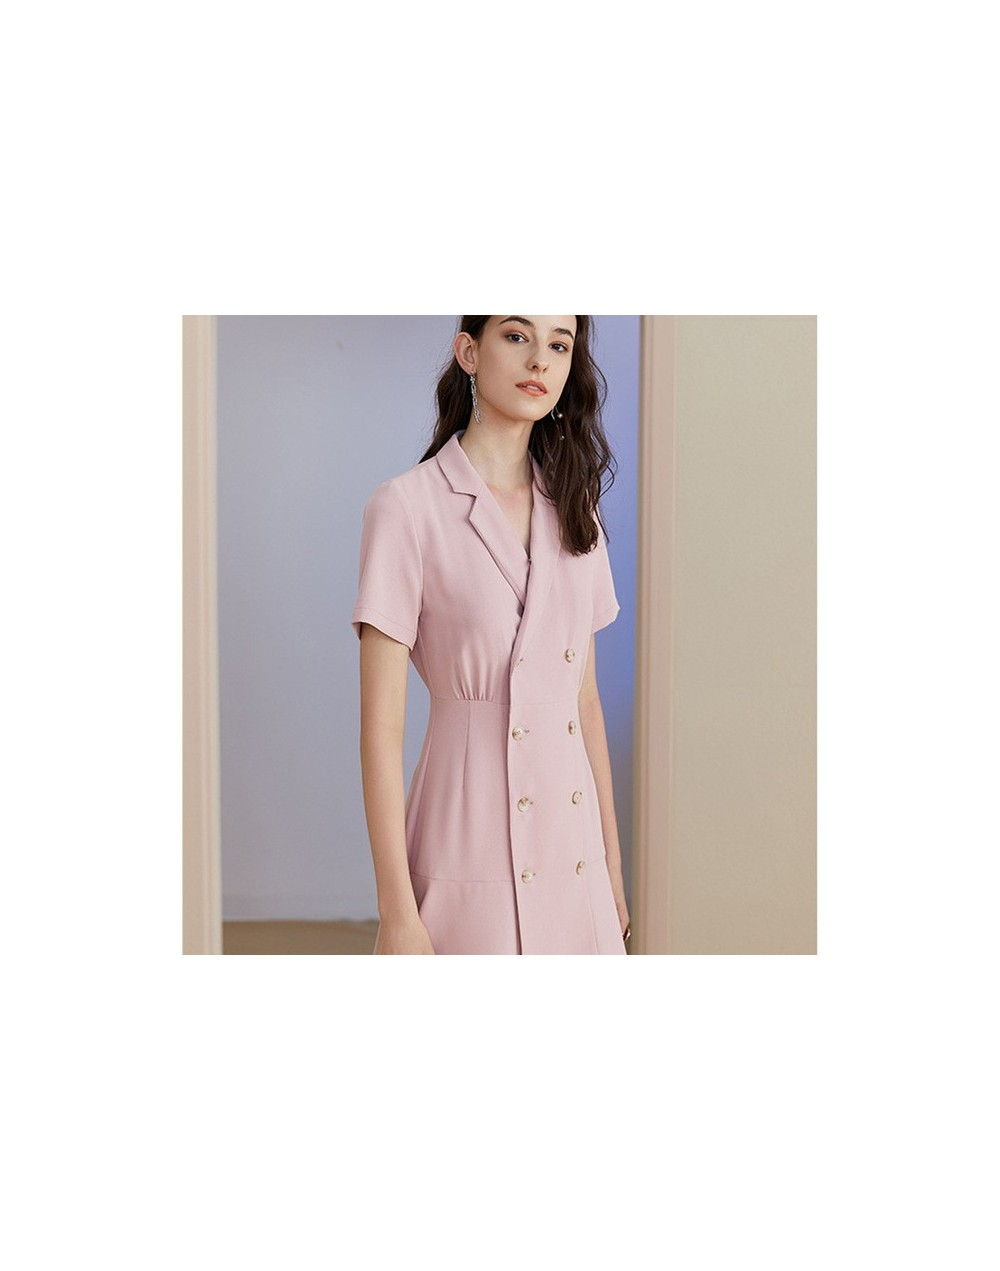 Elegant Women Suit Double Breasted One Piece Dress Suits Office Lady Business Work Blazer Jacket Noched Dress Vestido Robe 2...